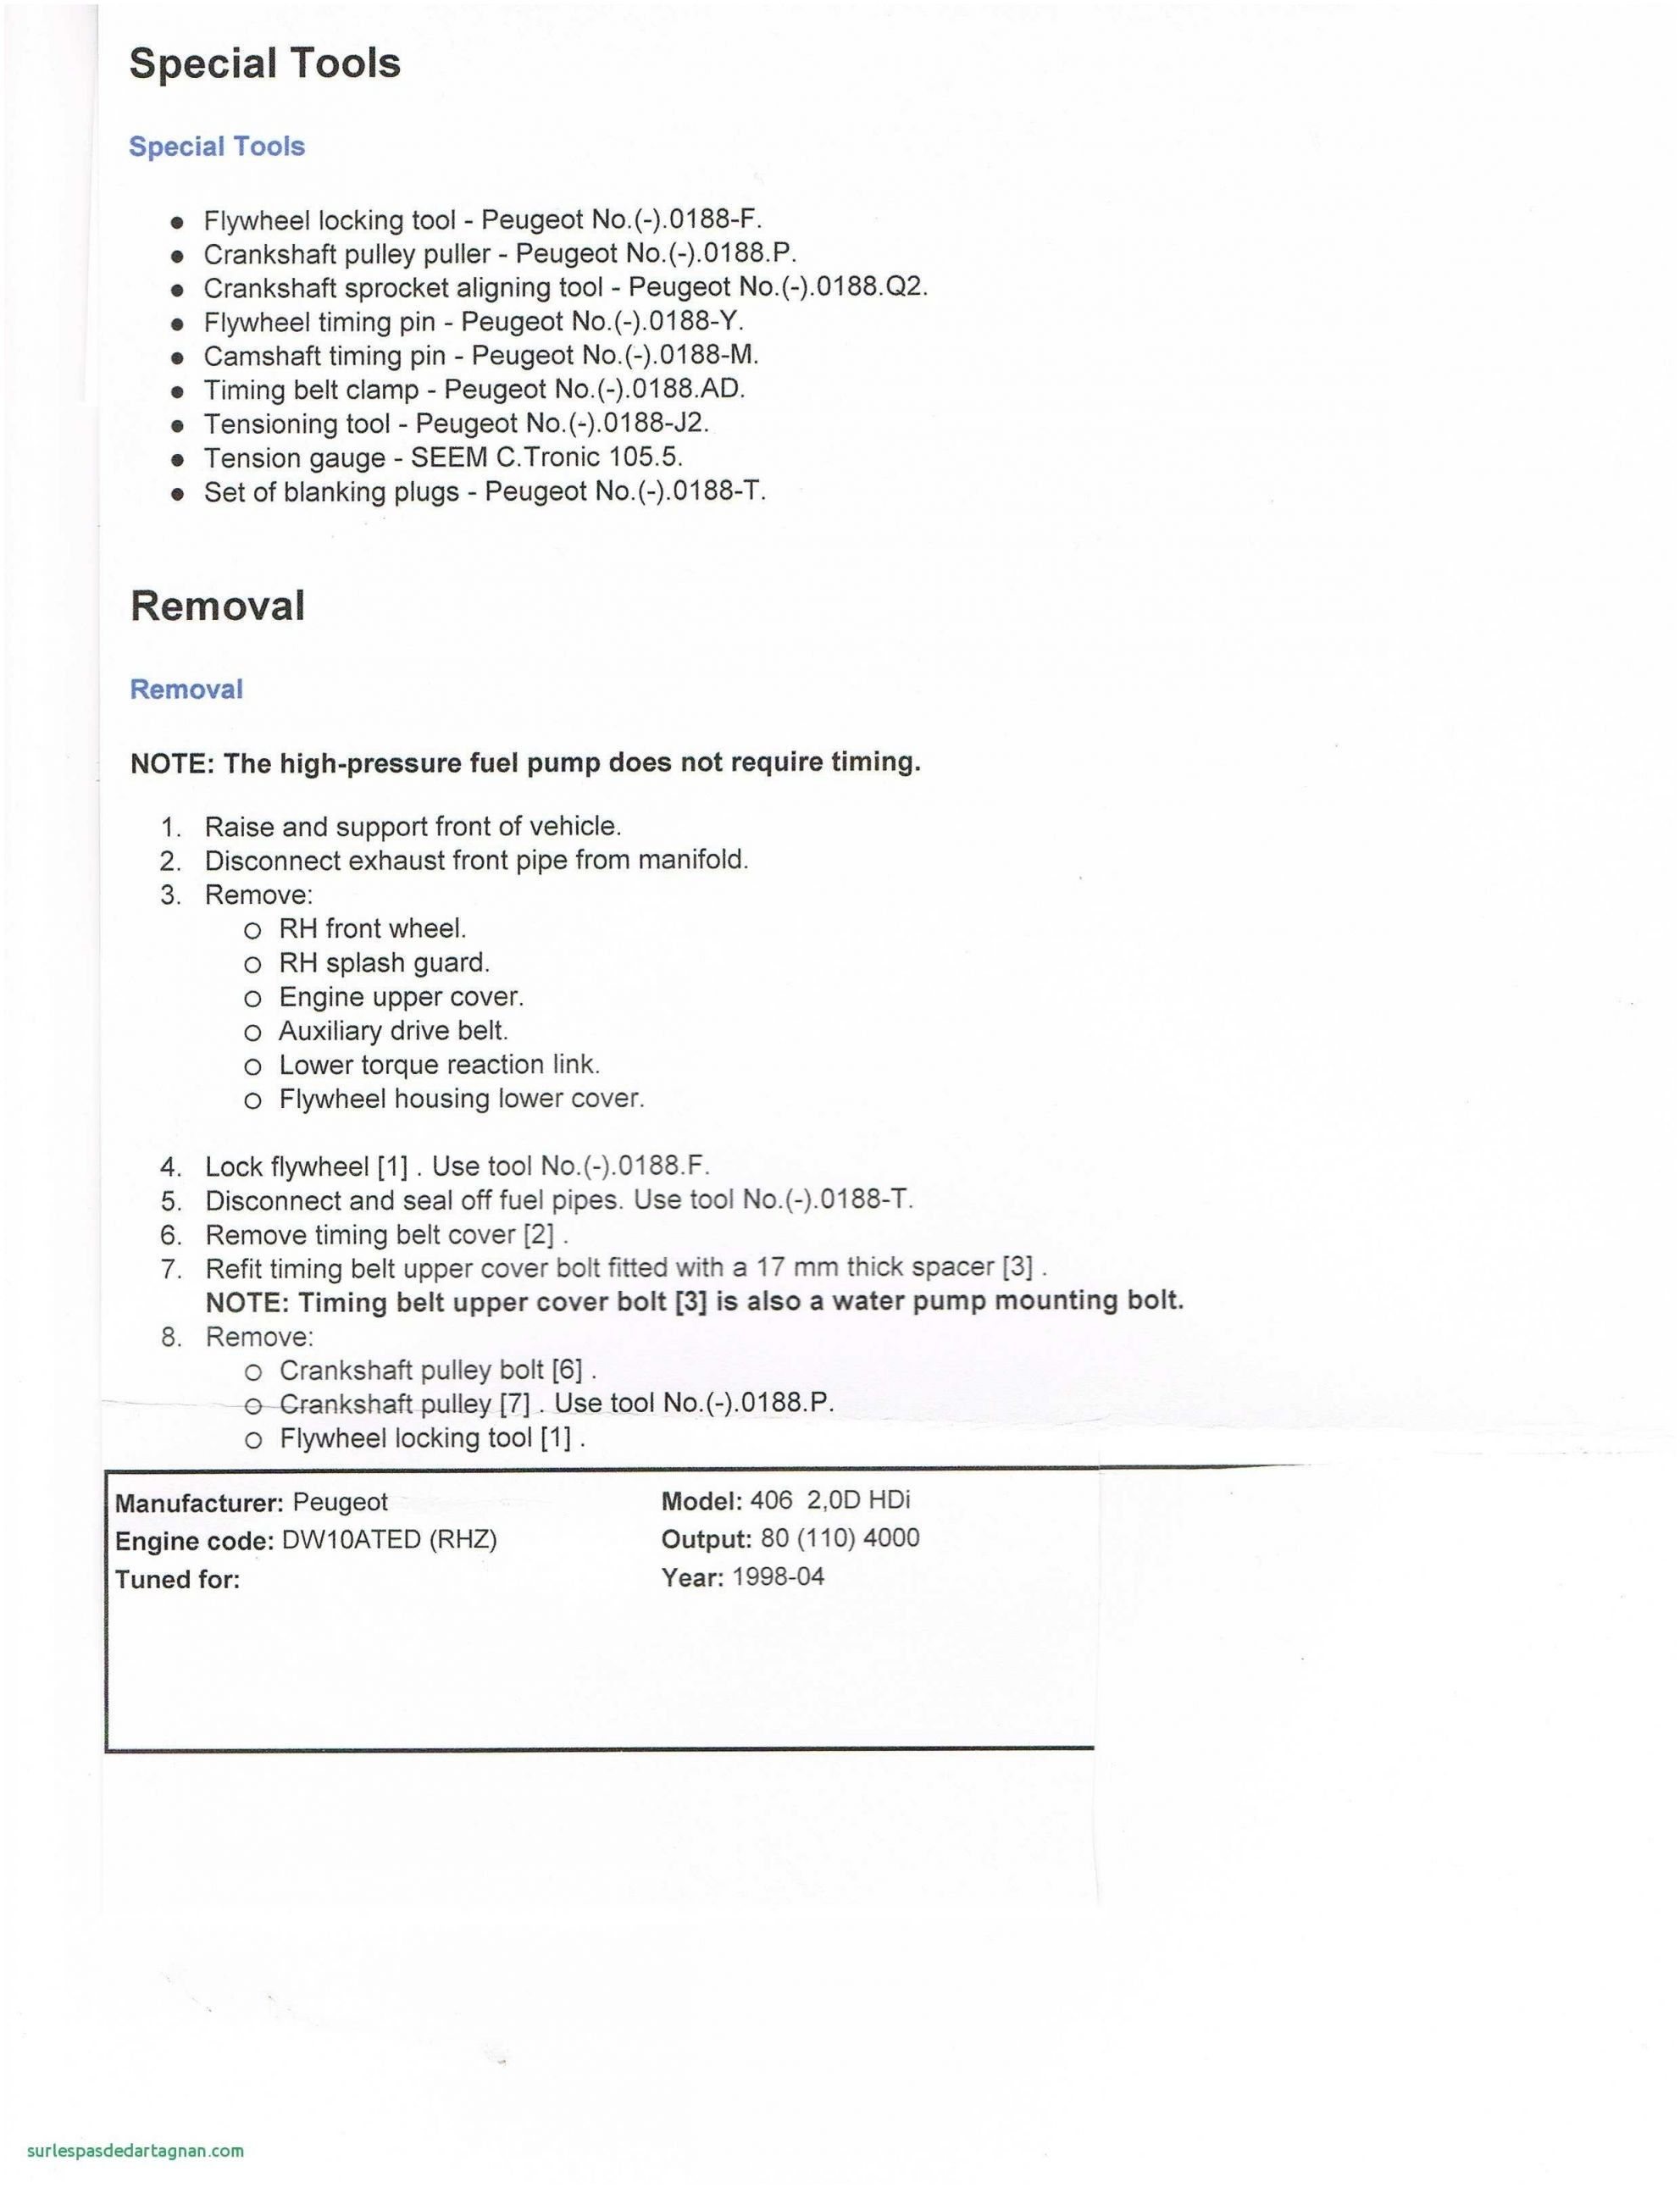 20 Business Plan Template Docx New Relatively Media Proposal Example Tt94 – Documentaries For Change